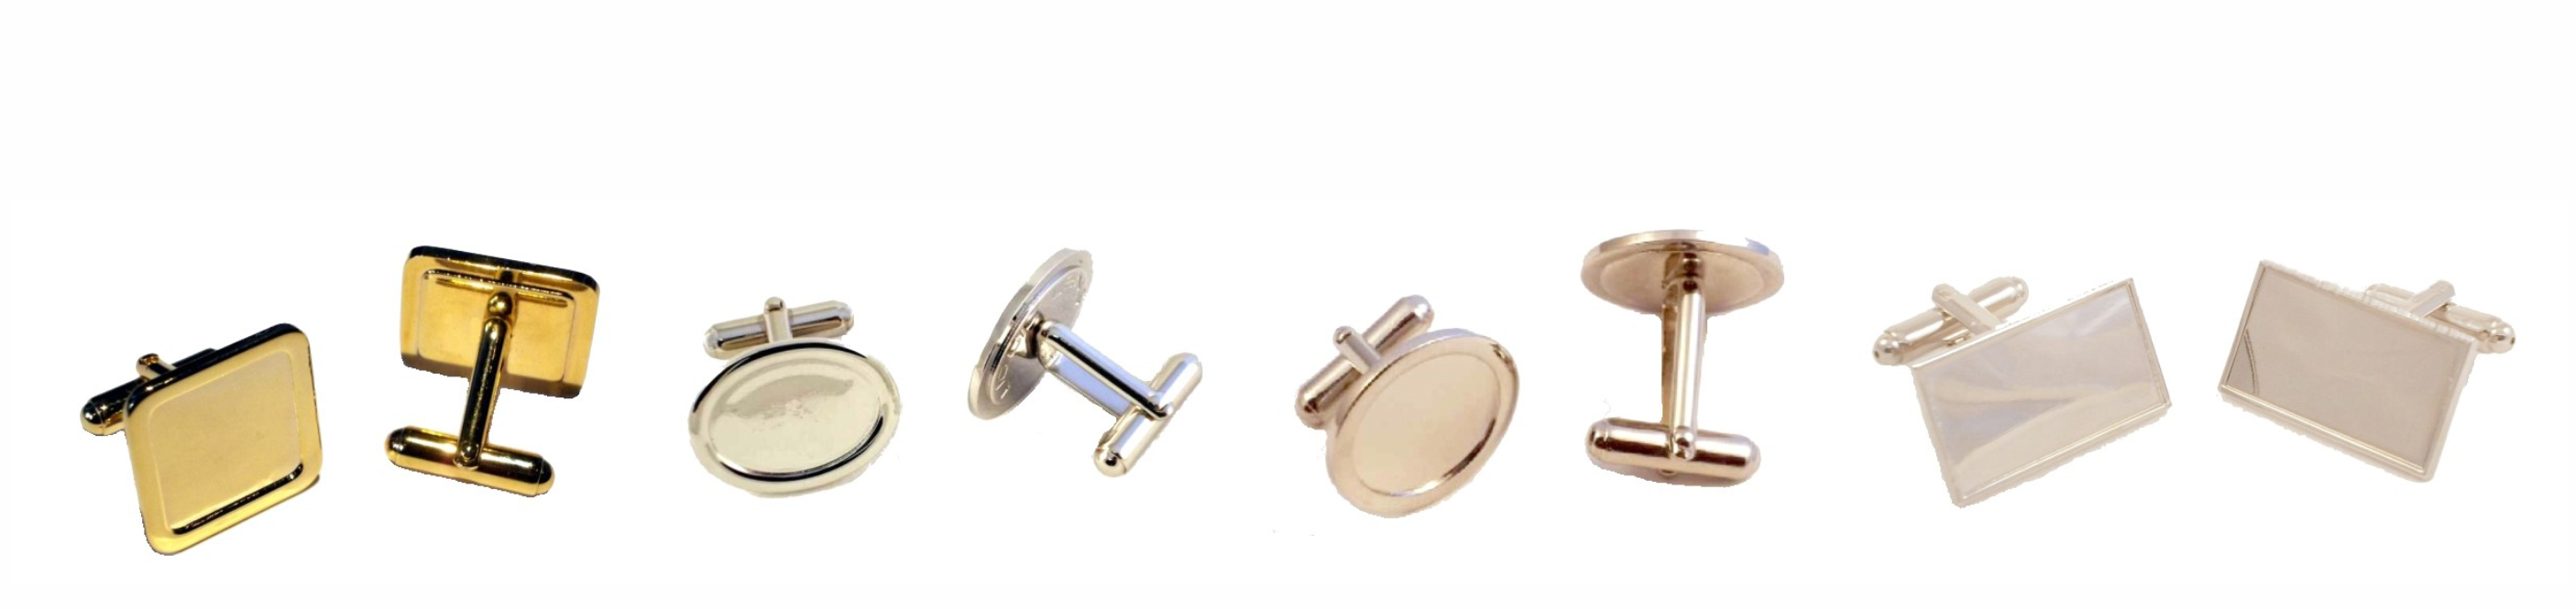 Cufflink Blanks with Printed Domes.